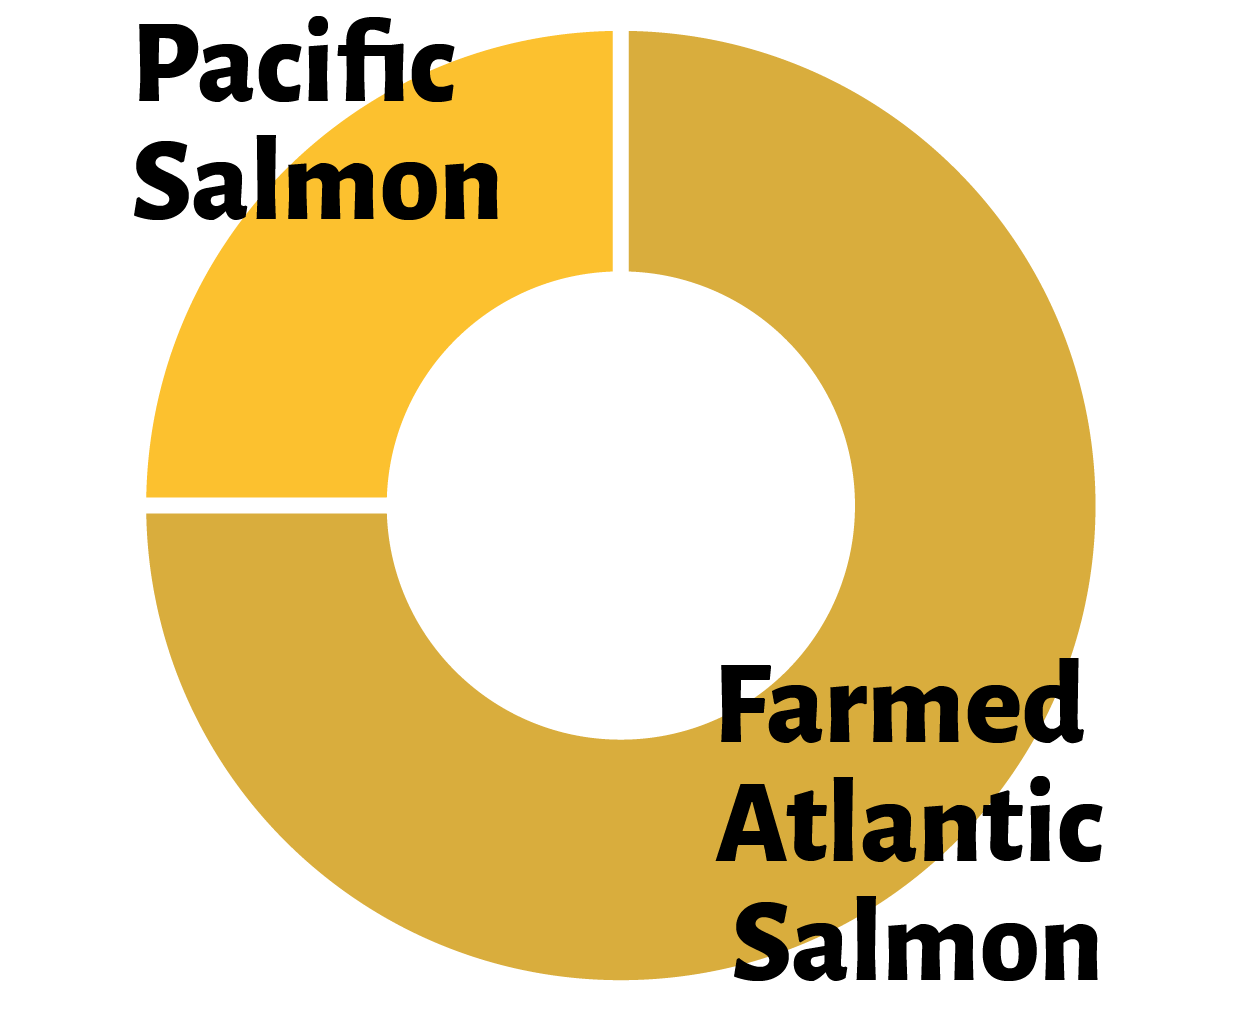 Farmed Atlantic salmon now makes up approximately 75% of BC's salmonhaul and is BC's top seafood export.   (source)